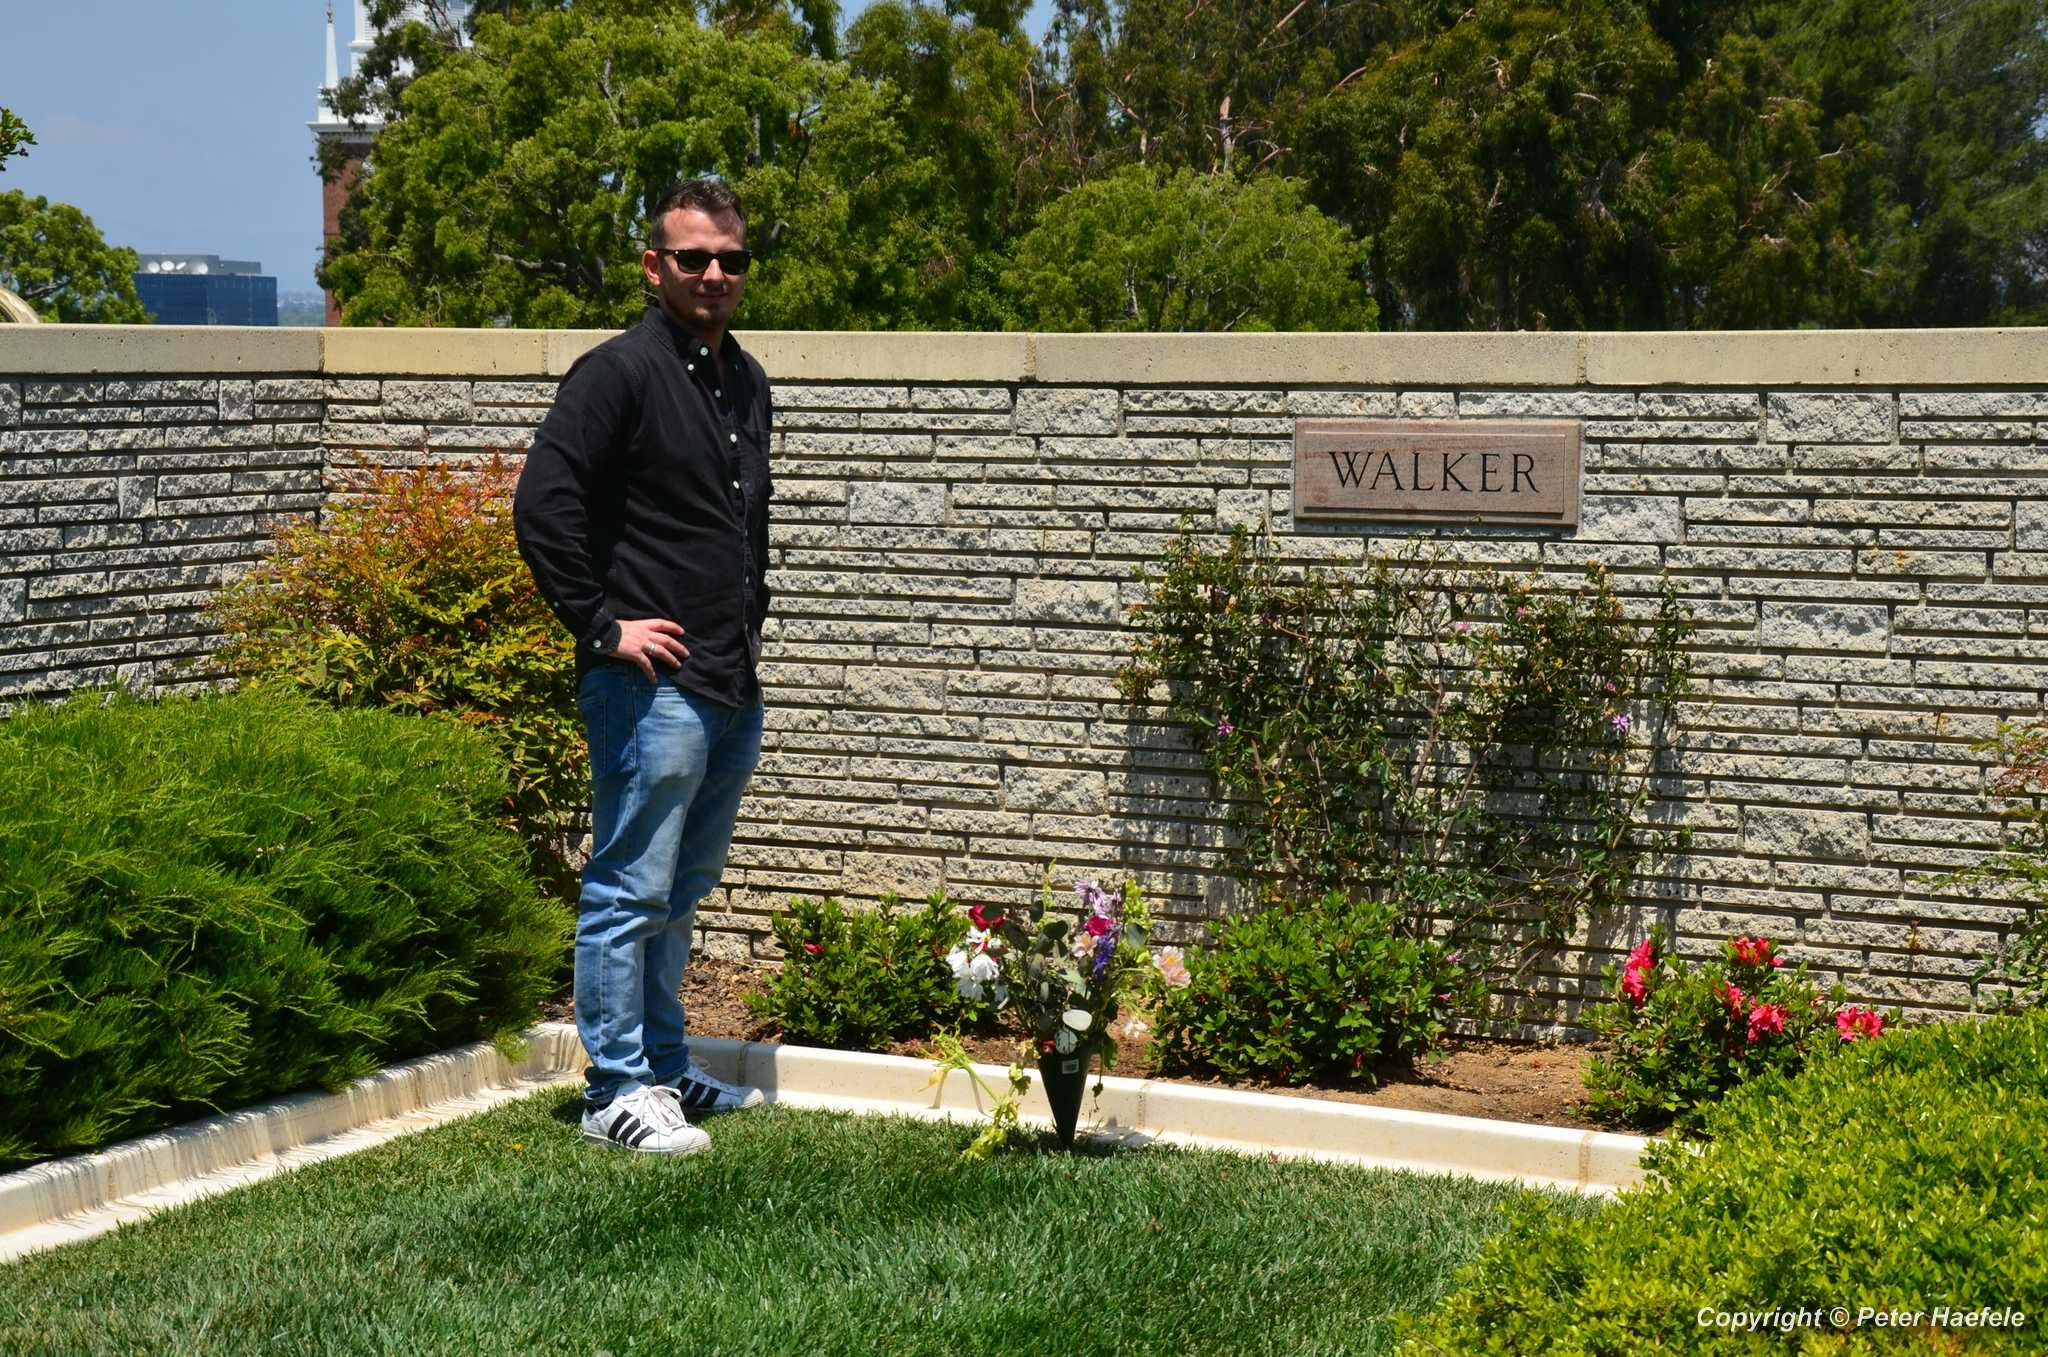 Roadtrip USA - Forest Lawn Memorial Park, Los Angeles - Paul Walker's Grave